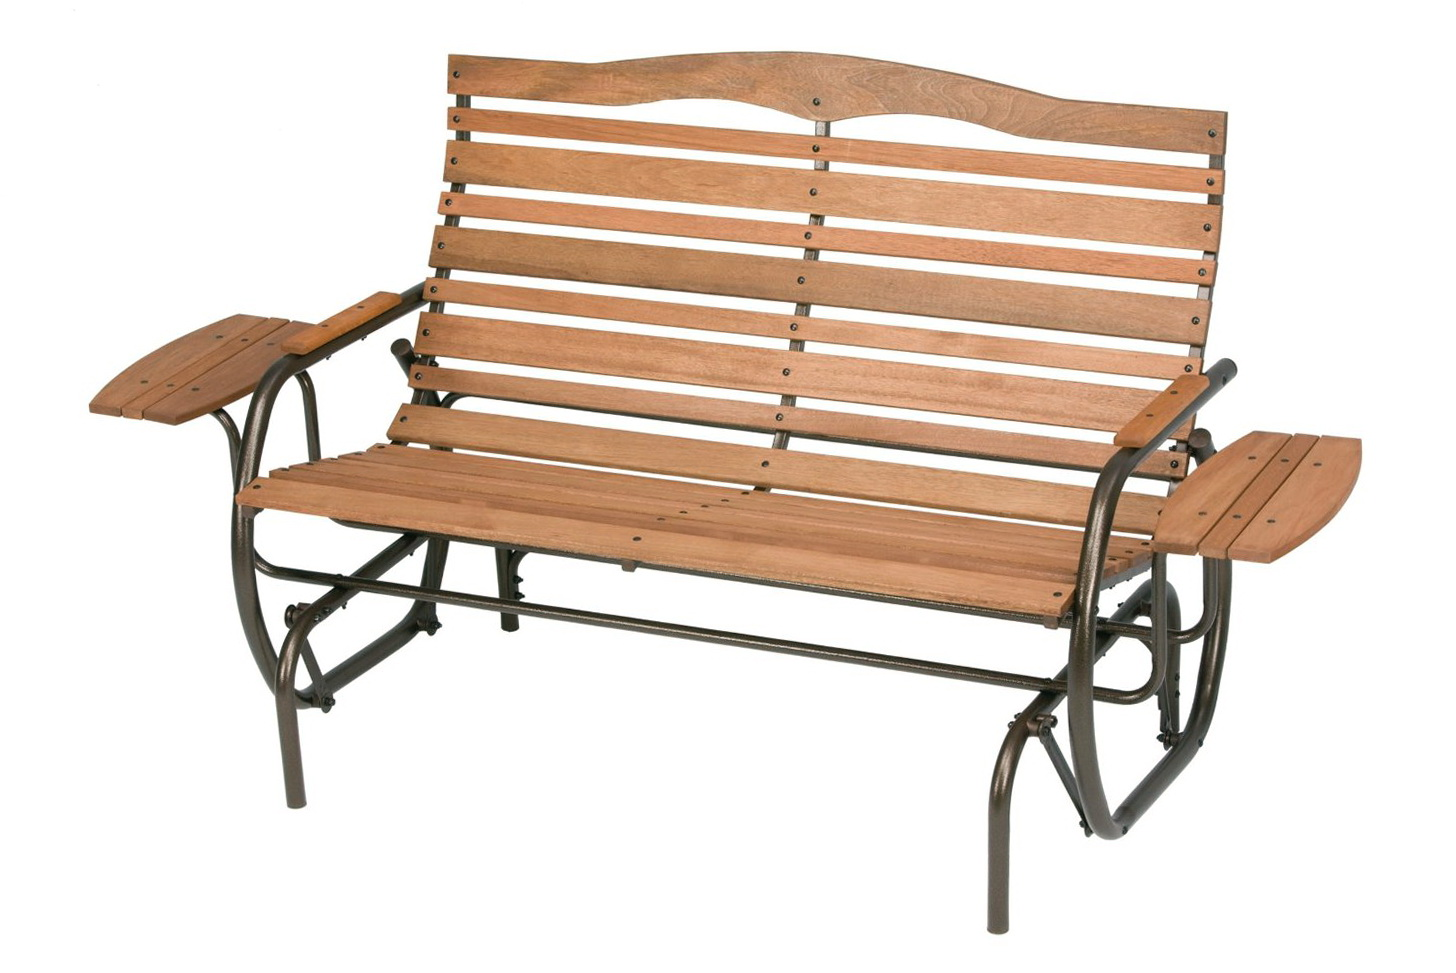 Outdoor wooden benches home depot home design ideas Home depot benches